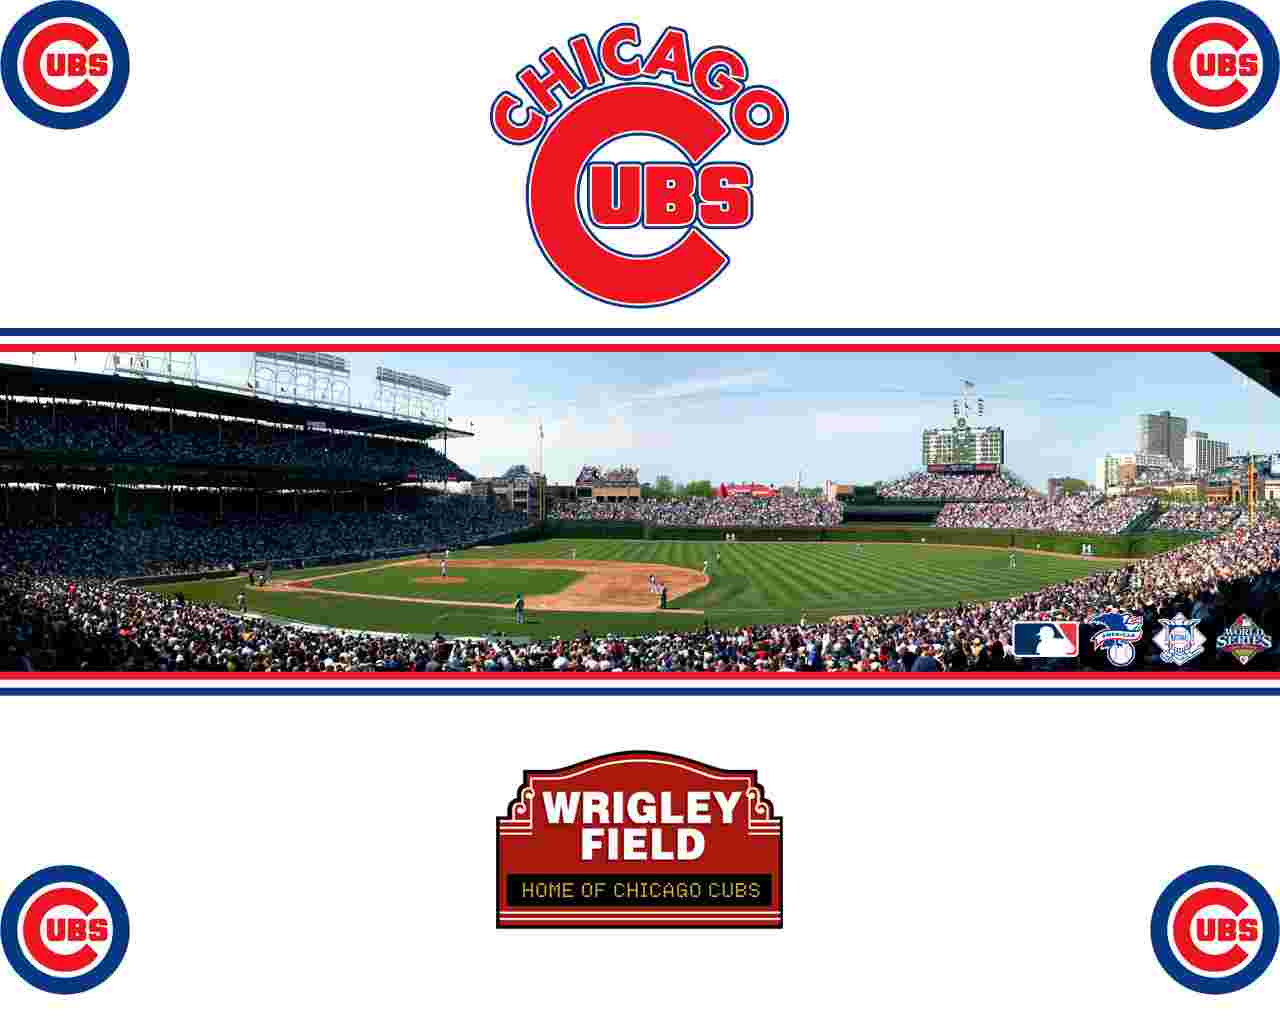 chicago cubs wallpaper   Baseball   Sport   Wallpaper Collection 1280x1024